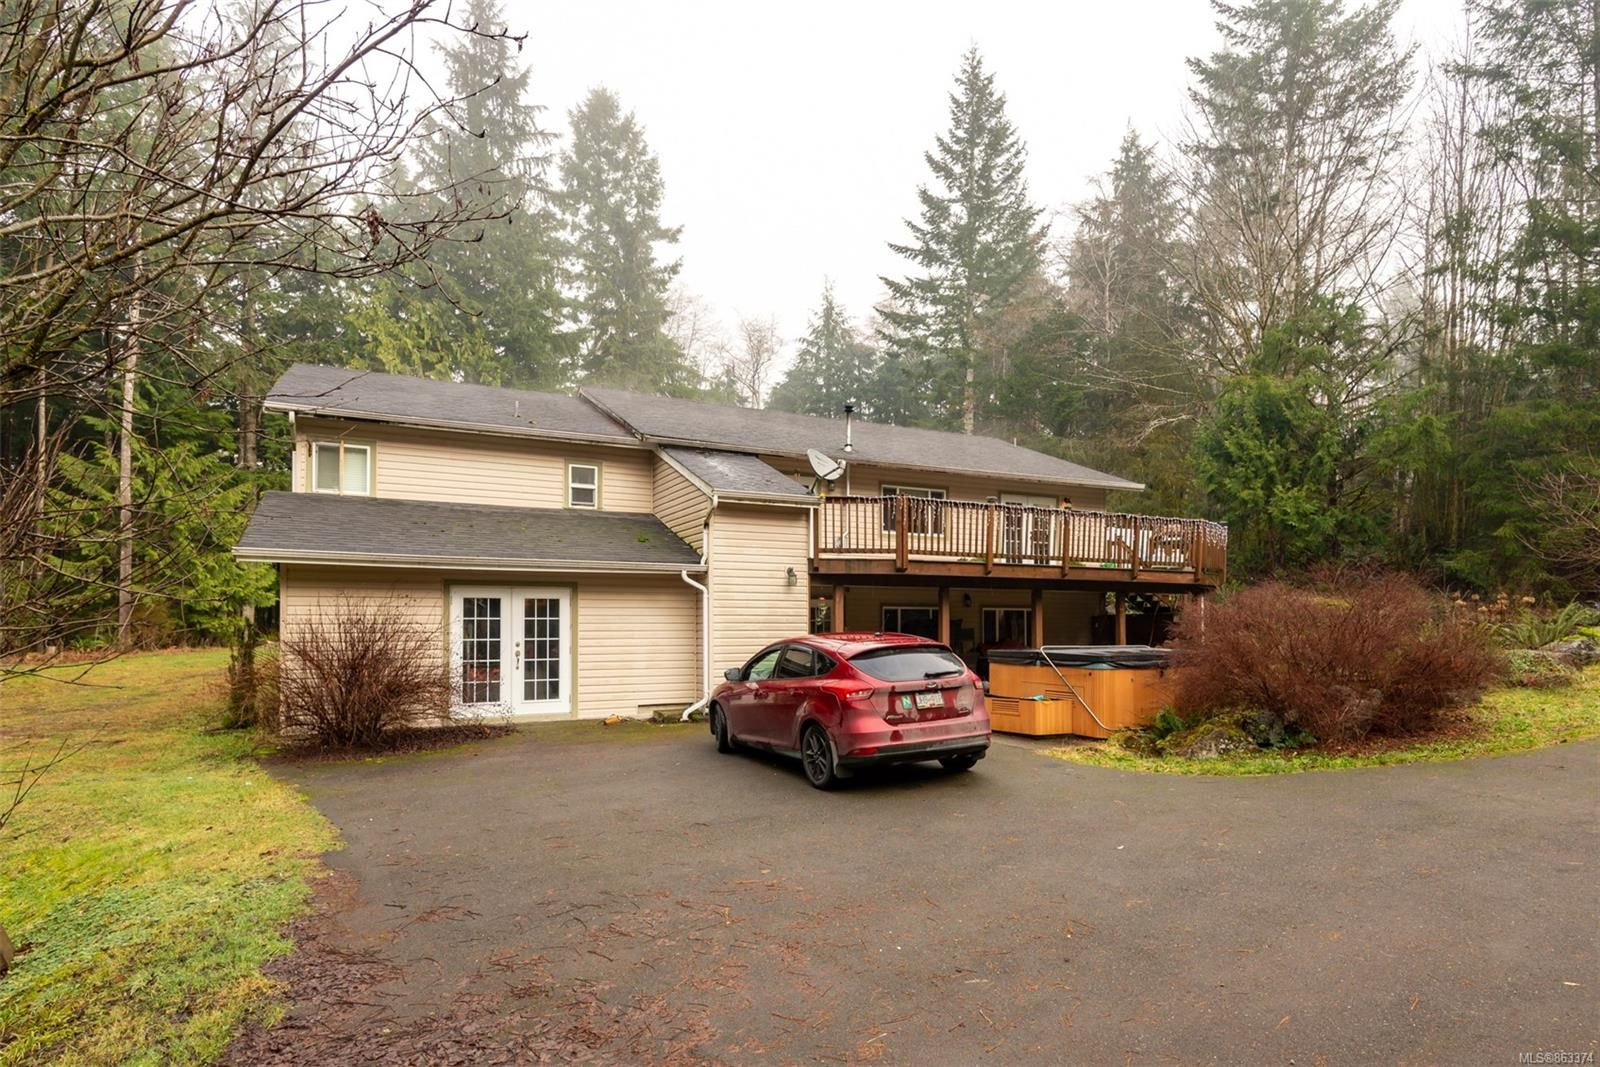 Photo 9: Photos: 572 Sabre Rd in : NI Kelsey Bay/Sayward House for sale (North Island)  : MLS®# 863374